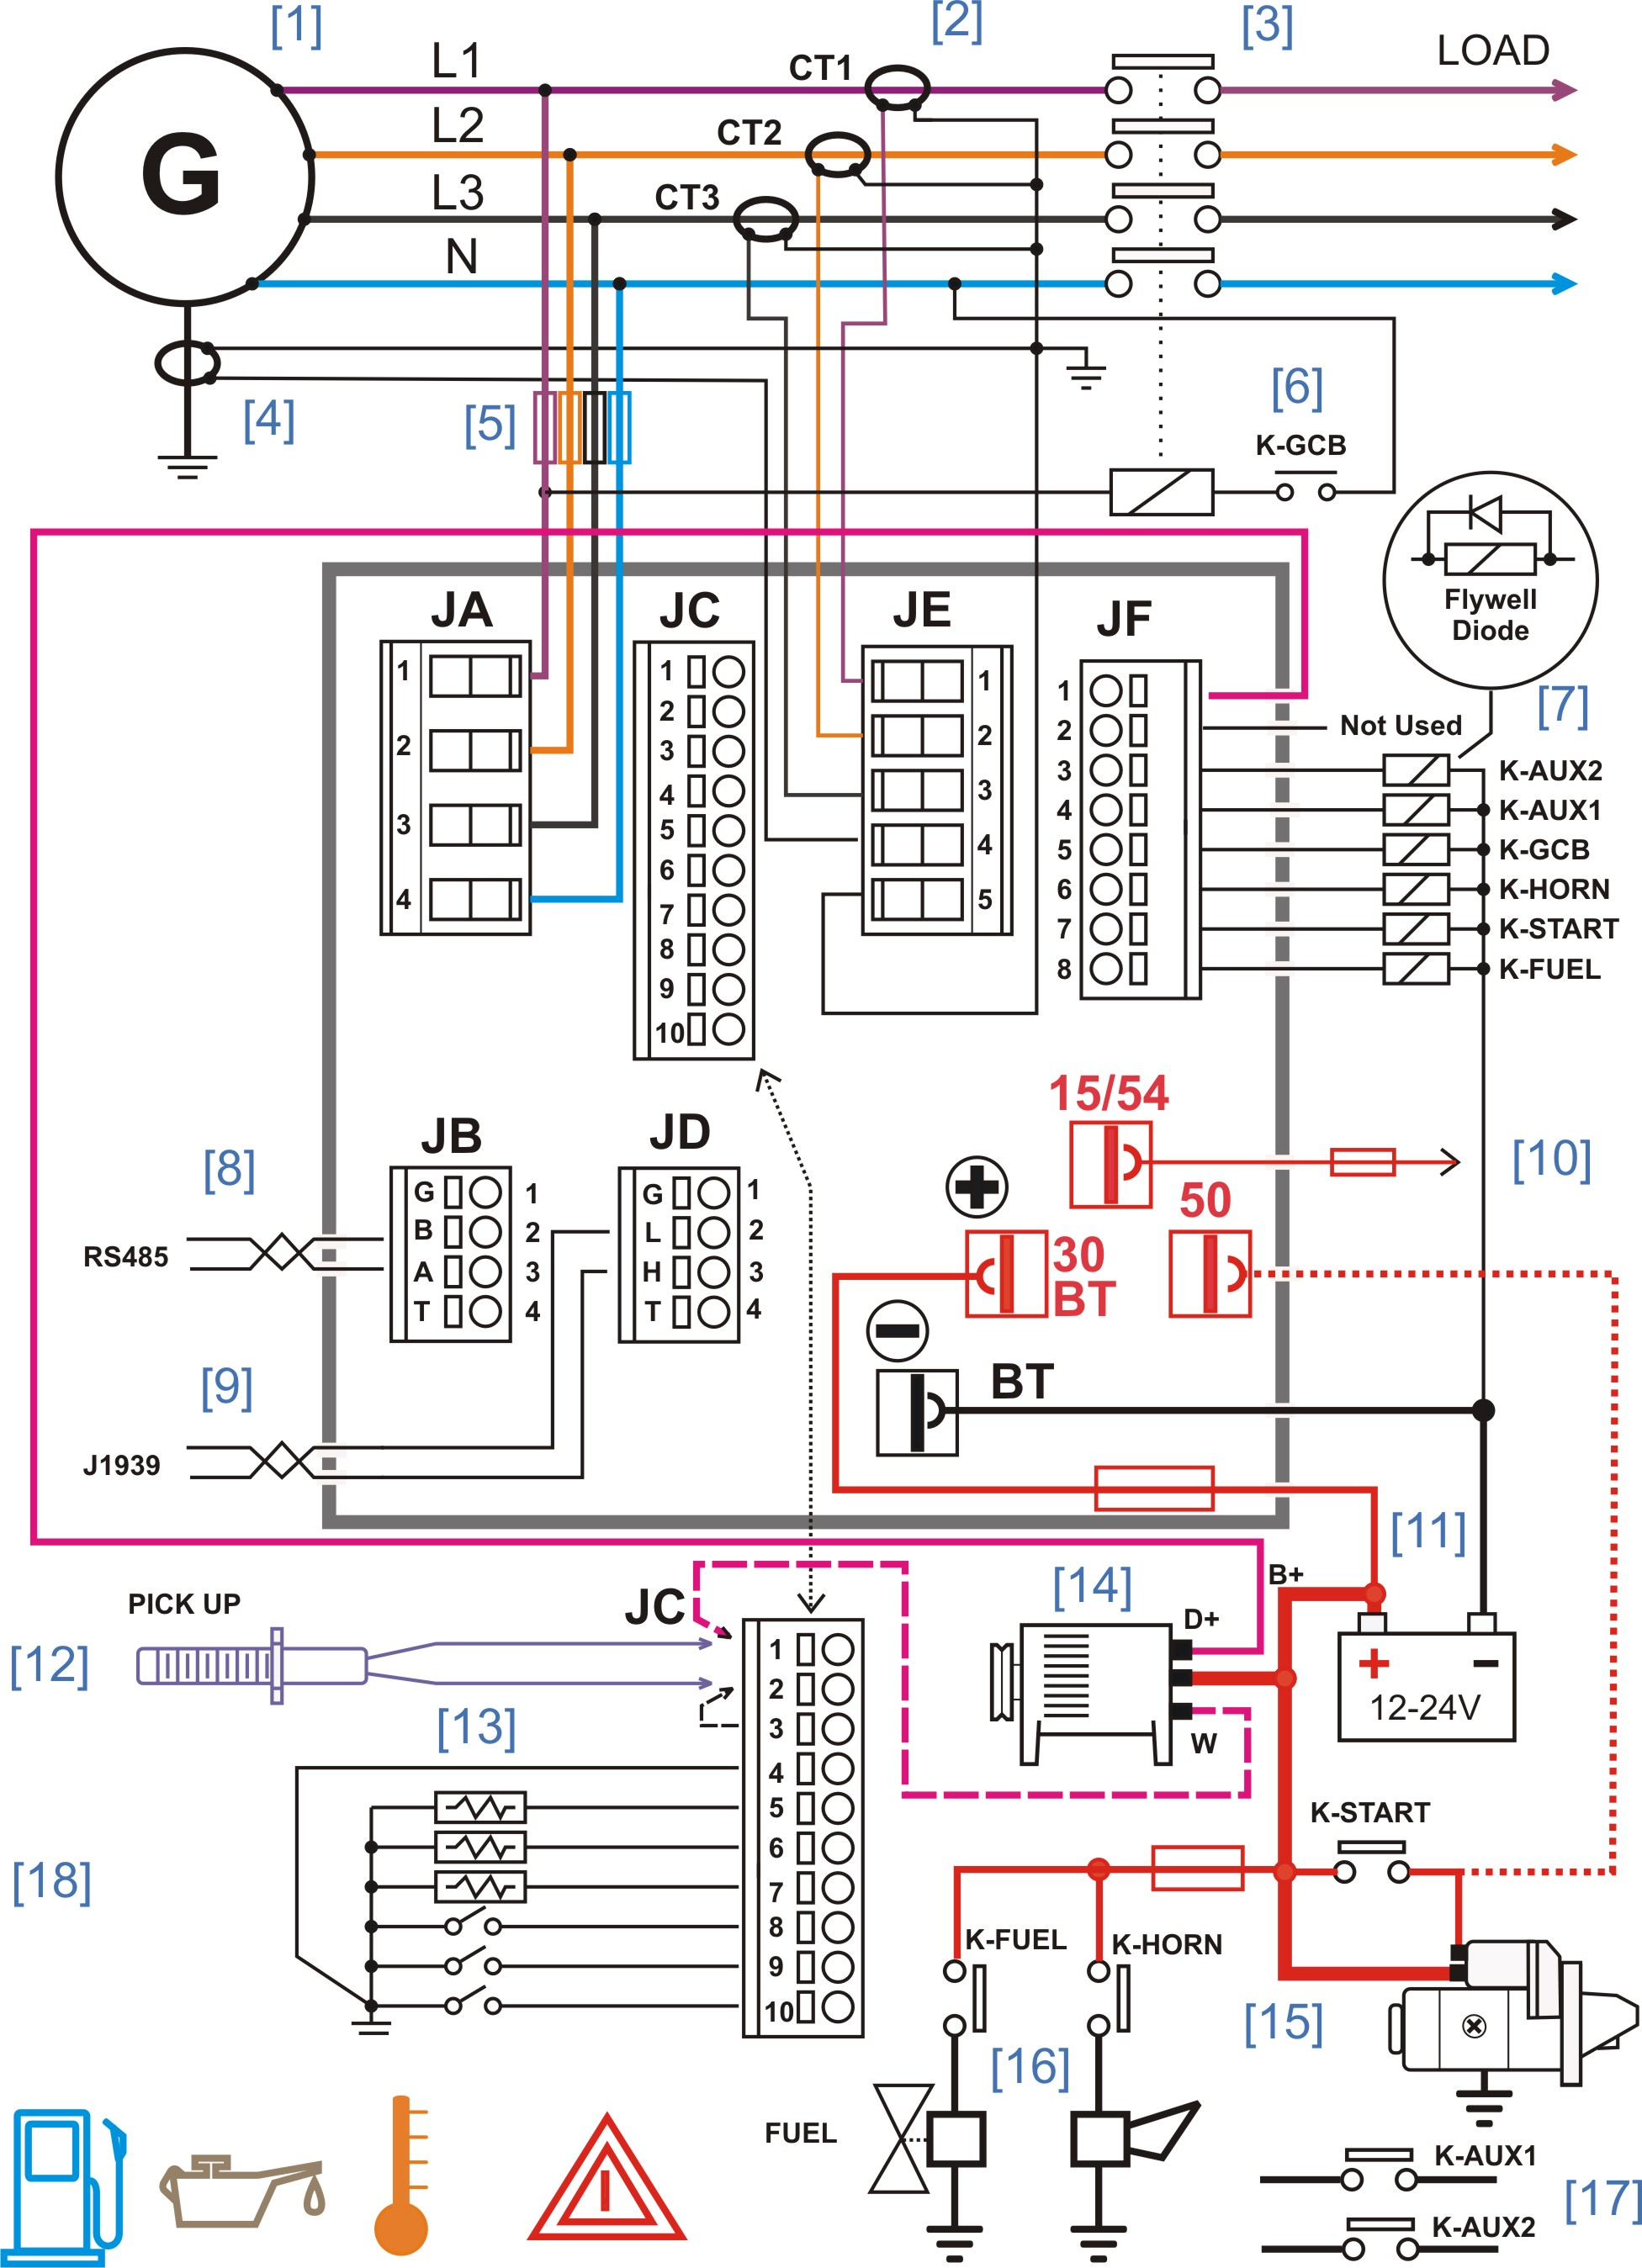 Diesel Generator Control Panel Wiring Diagram diesel generator control panel wiring diagram genset controller aggreko generator wiring diagram at panicattacktreatment.co